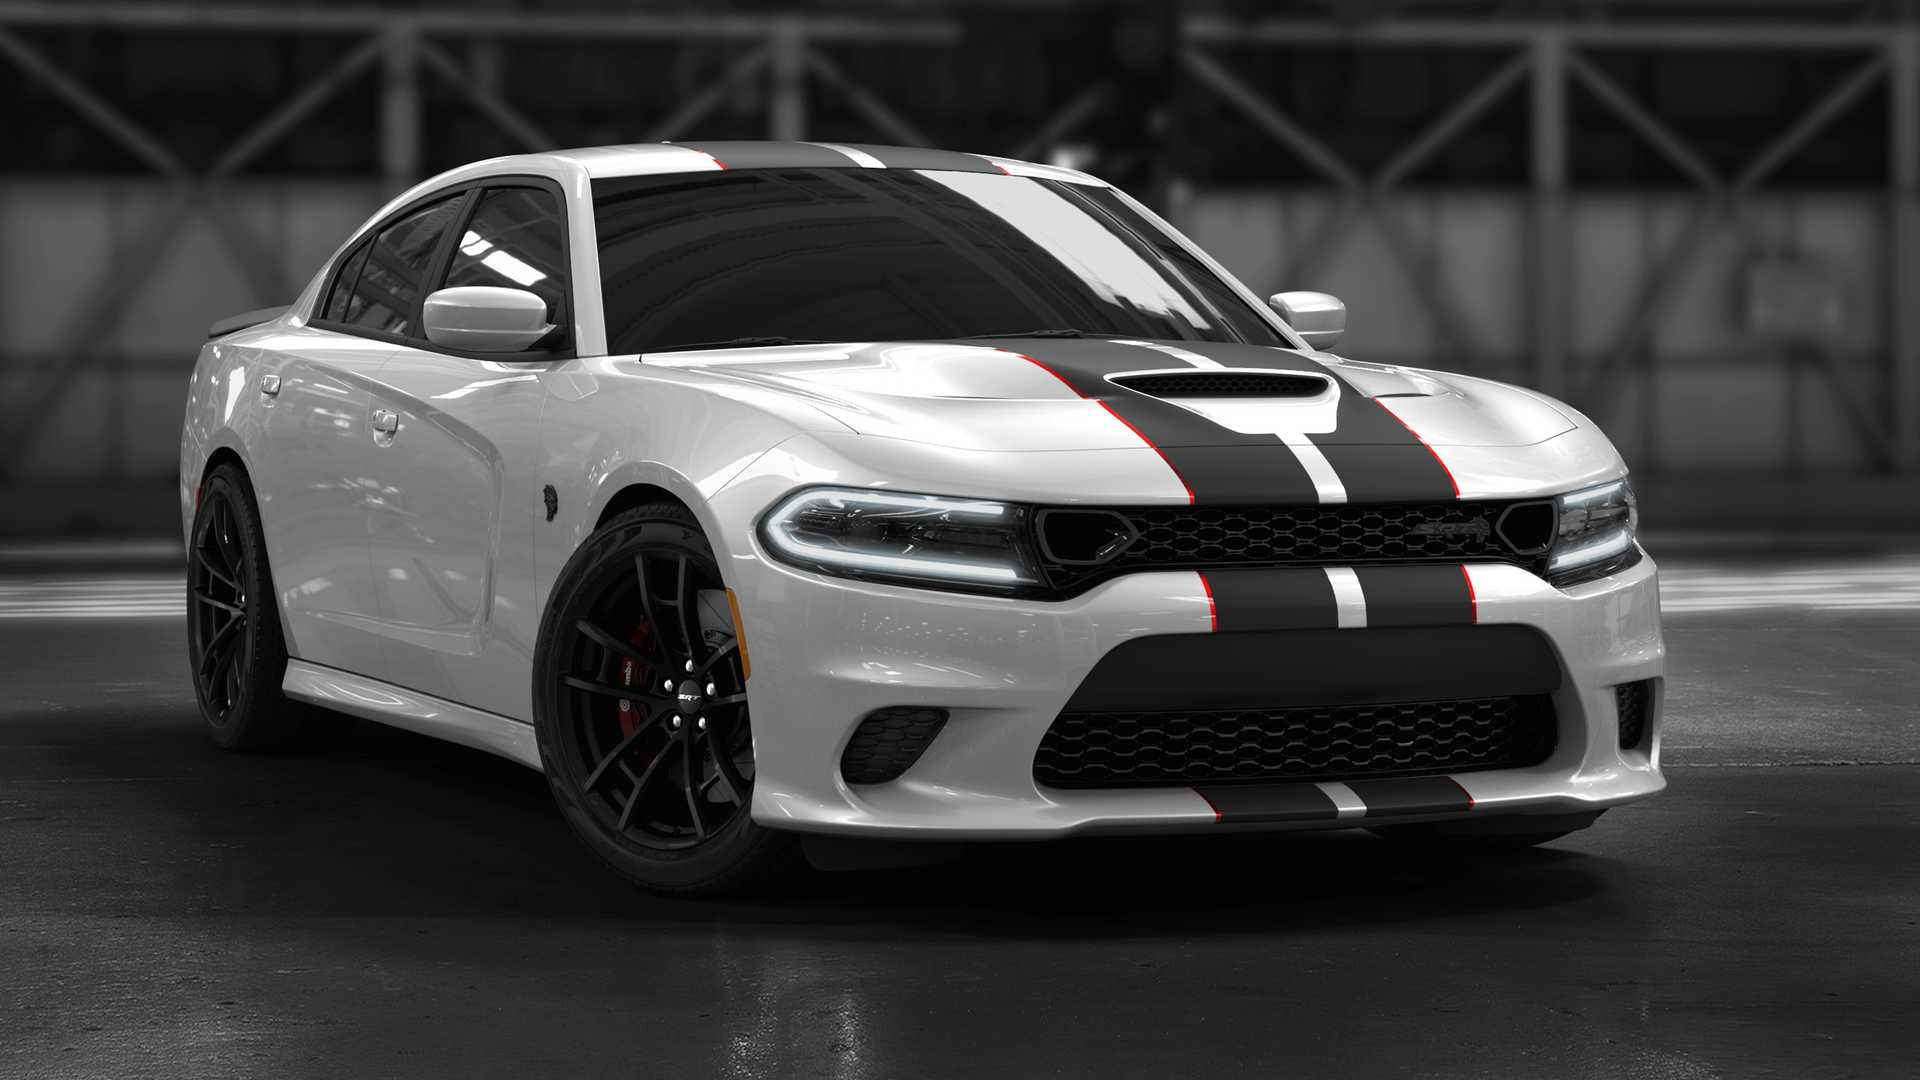 2019 Dodge Charger Srt Hellcat Octane Edition Wallpapers 9 Hd Images Newcarcars